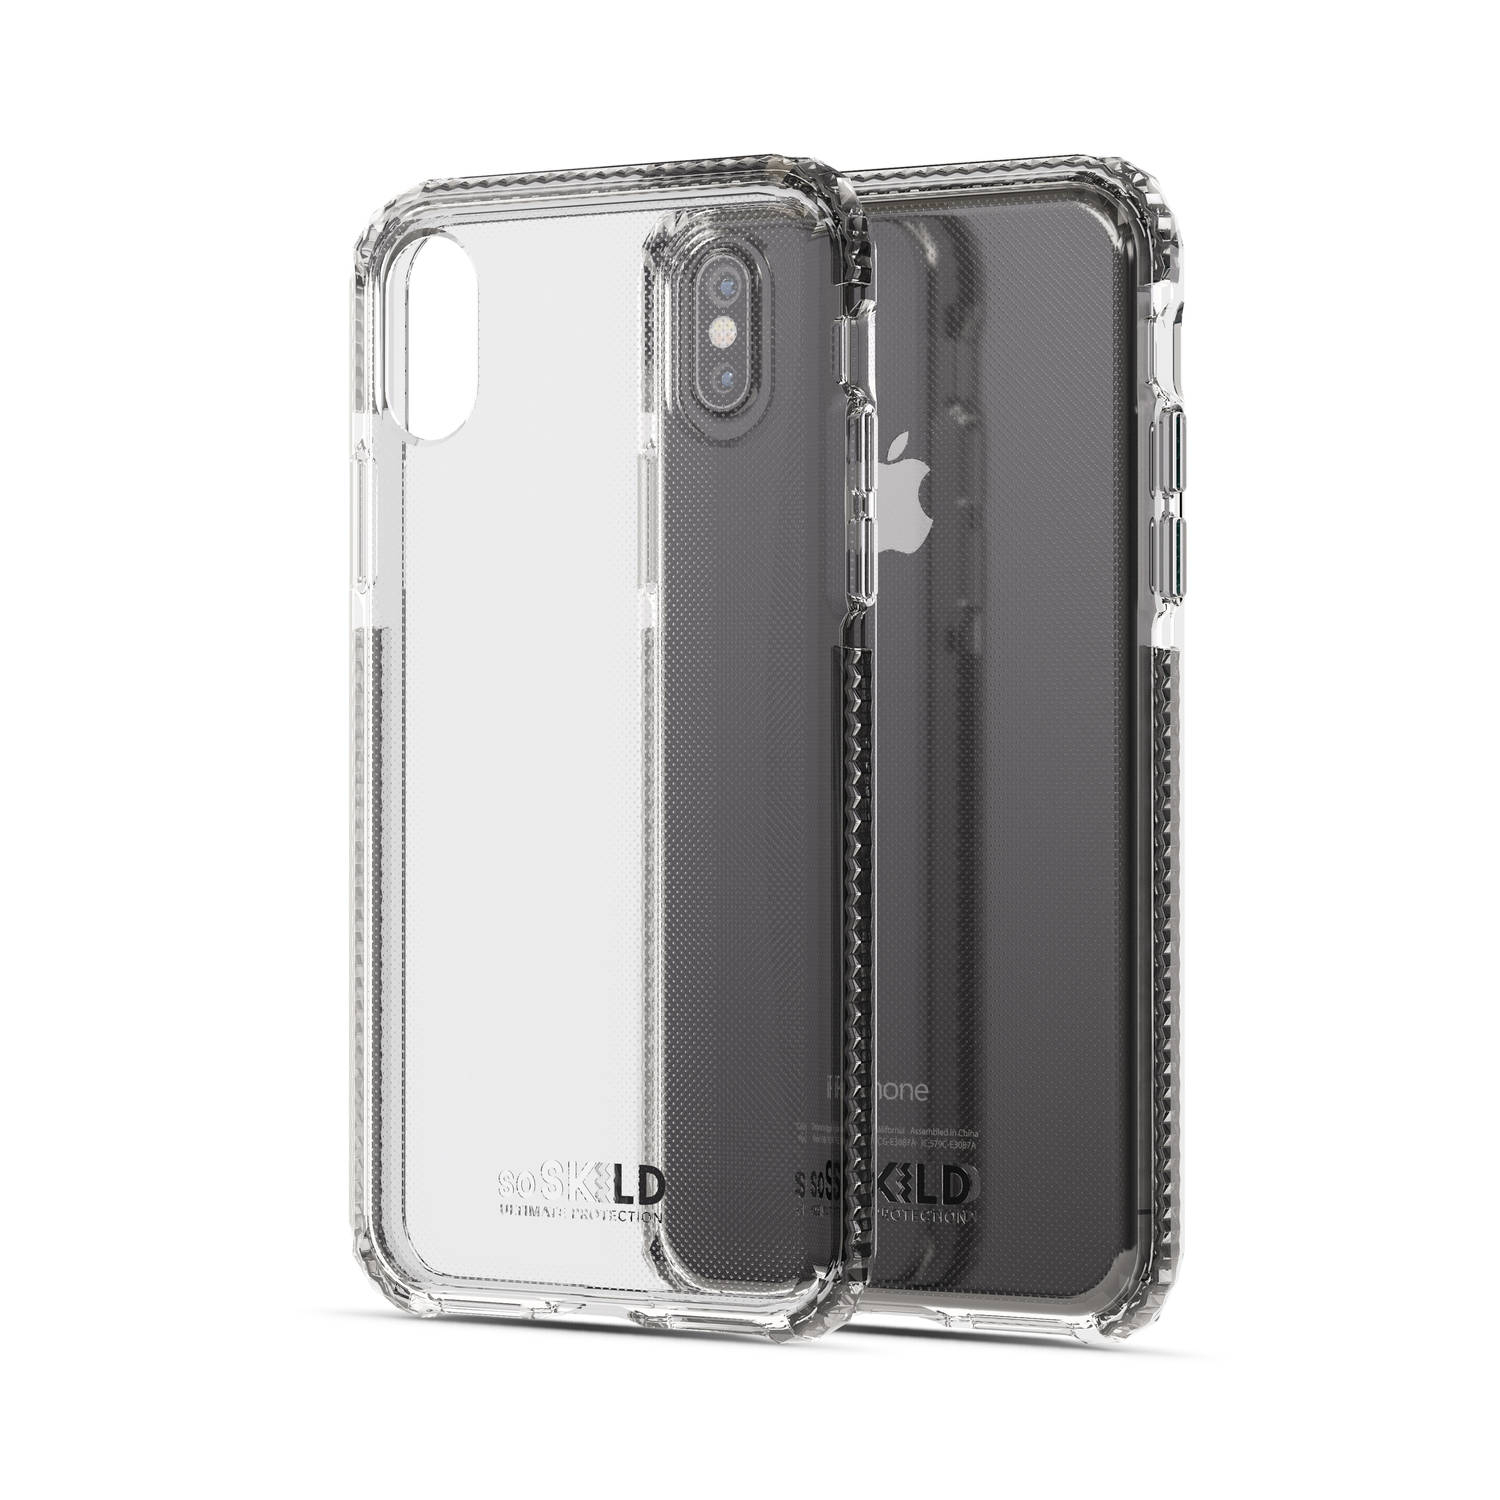 Korting Soskild Defend Back Case Transparant Voor Iphone X Xs